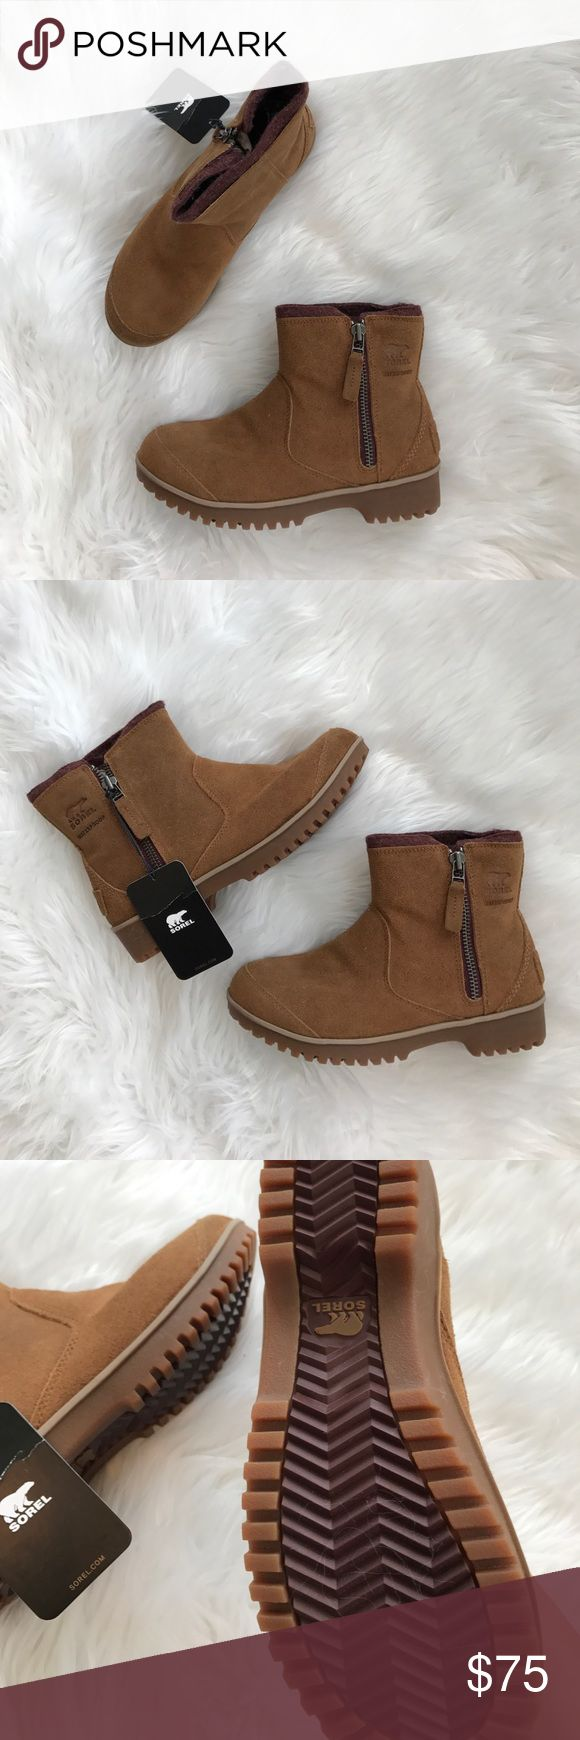 • Sorel • Meadow Zip Tan Waterproof Boots 7 NWT - Sorel - New with Tags  - Tan - Meadow Boots - Size 7 - No Box Sorel Shoes Winter & Rain Boots